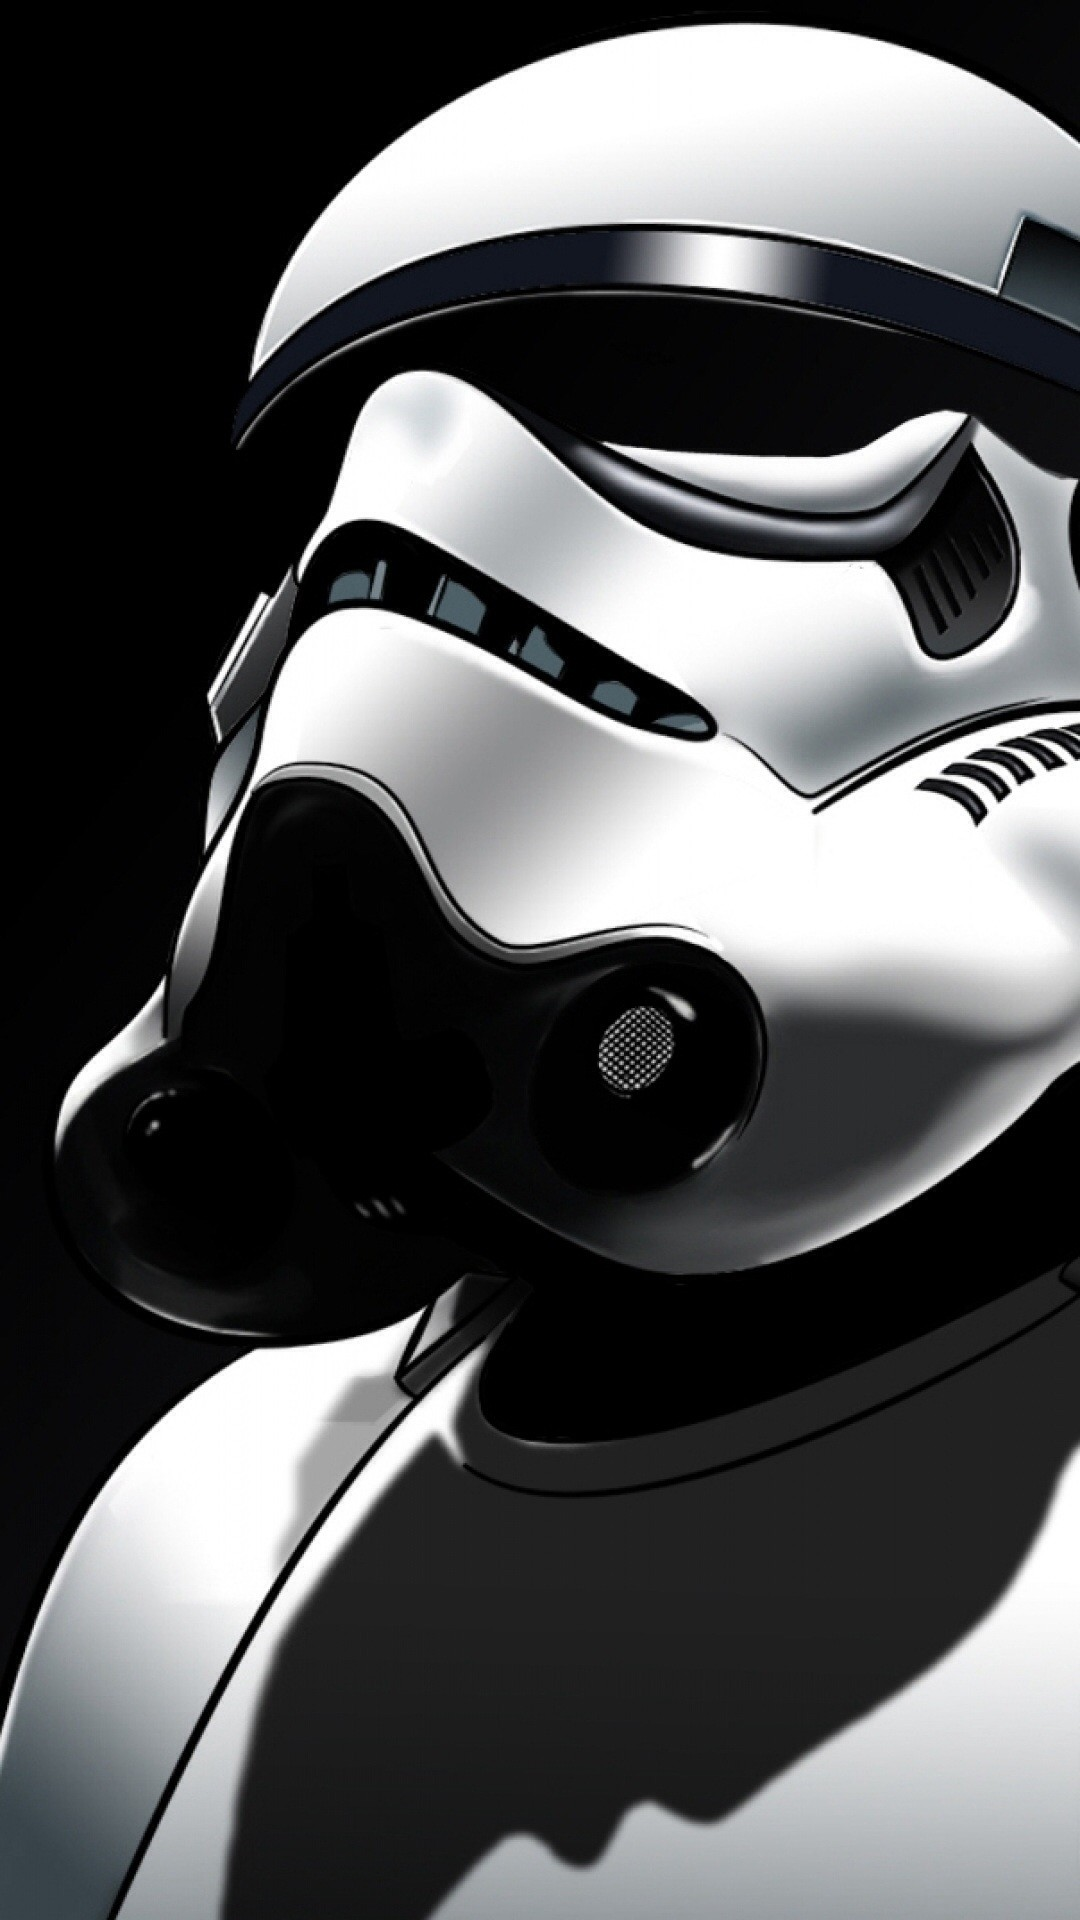 Download Wallpapers Dont Touch My Phone Gallery Wallpaper Star Wars Hd Portrait 1080x1920 Wallpaper Teahub Io